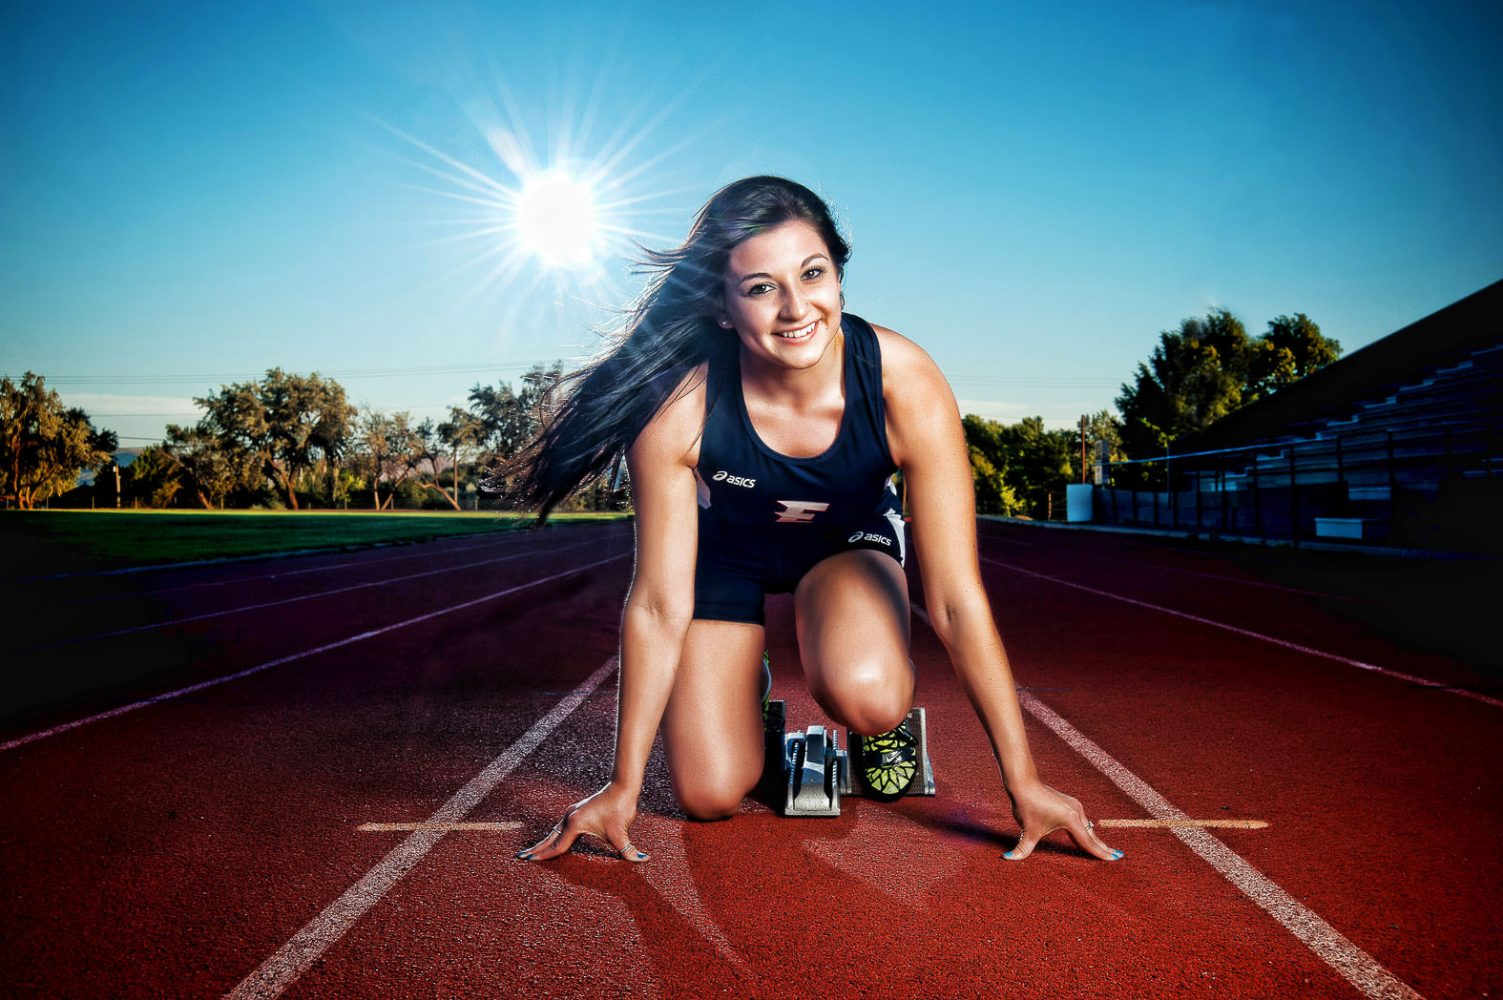 12-photonuvo-senior-pictures-sports-track